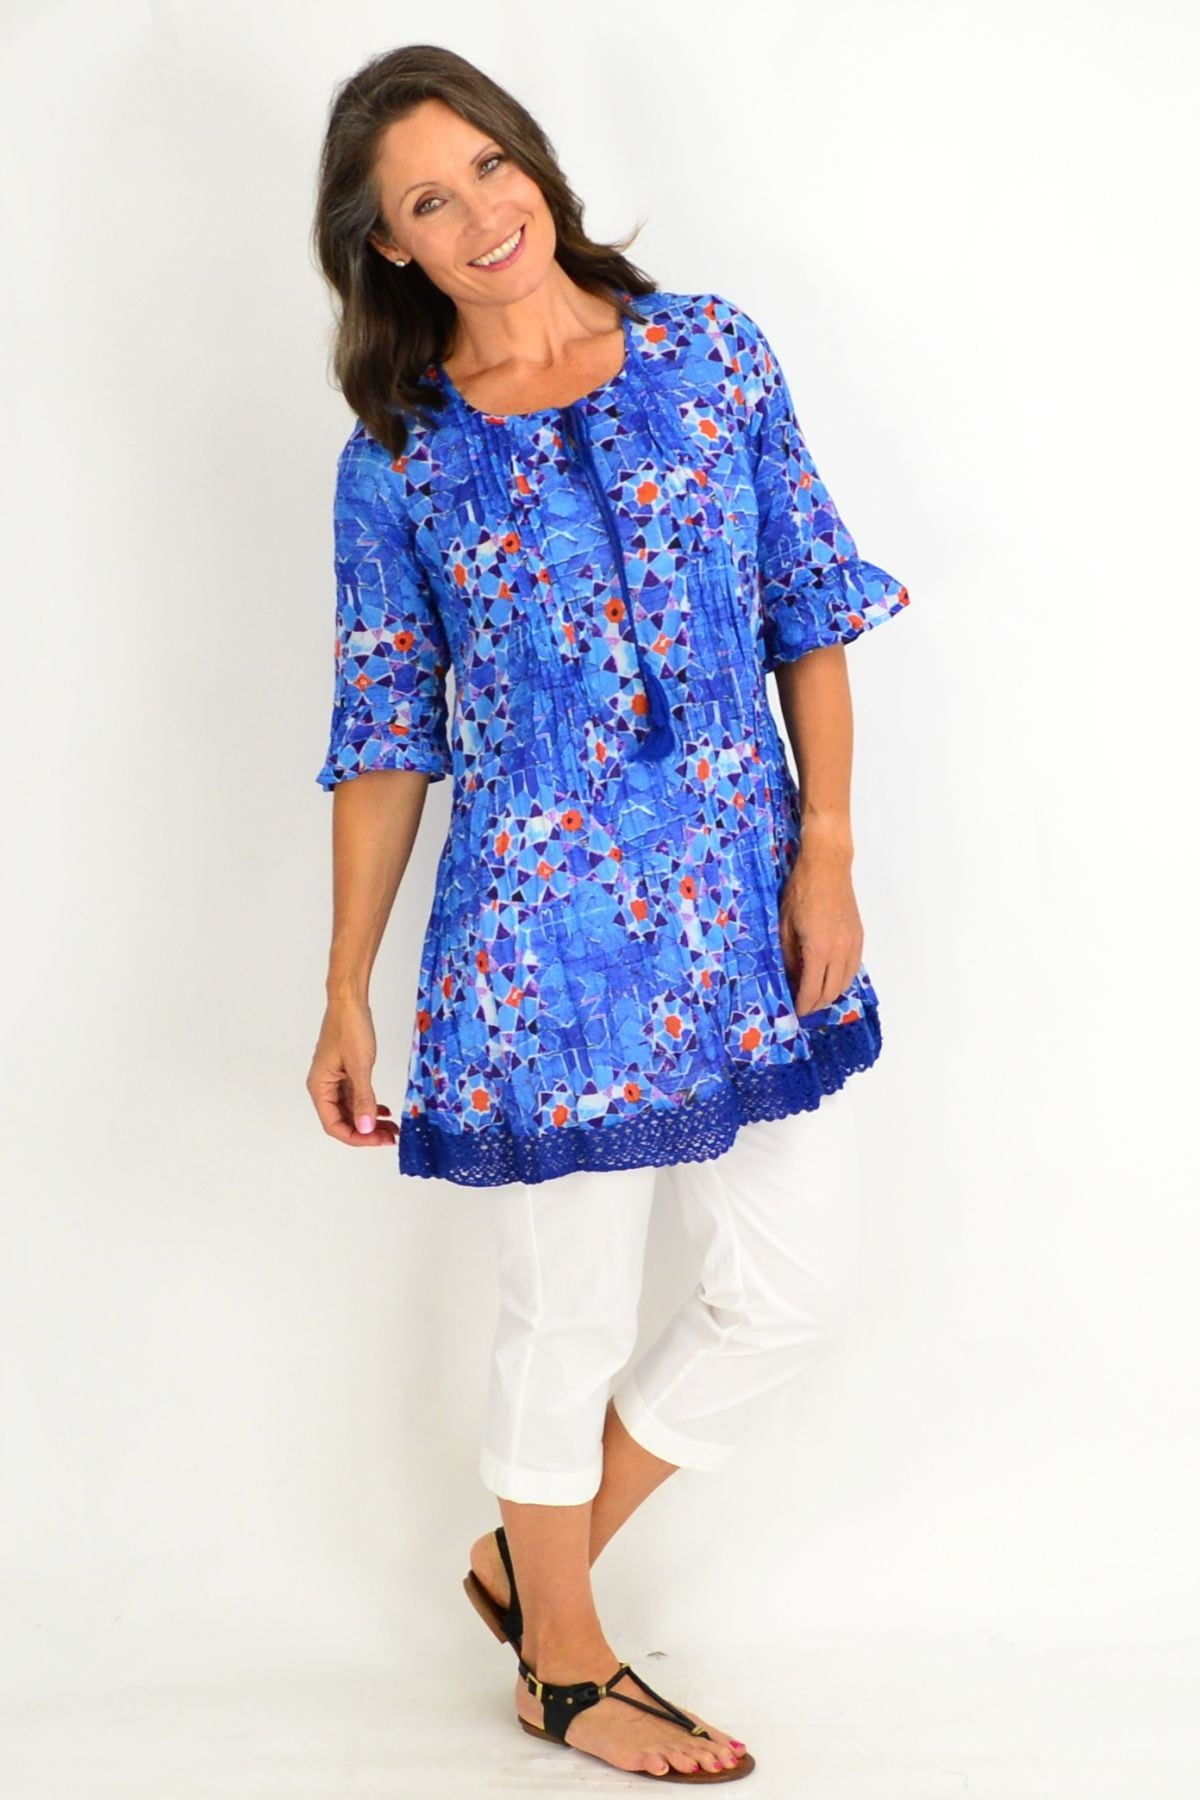 Blue Turkish Tiles Tunic Top | I Love Tunics | Tunic Tops | Tunic | Tunic Dresses  | womens clothing online